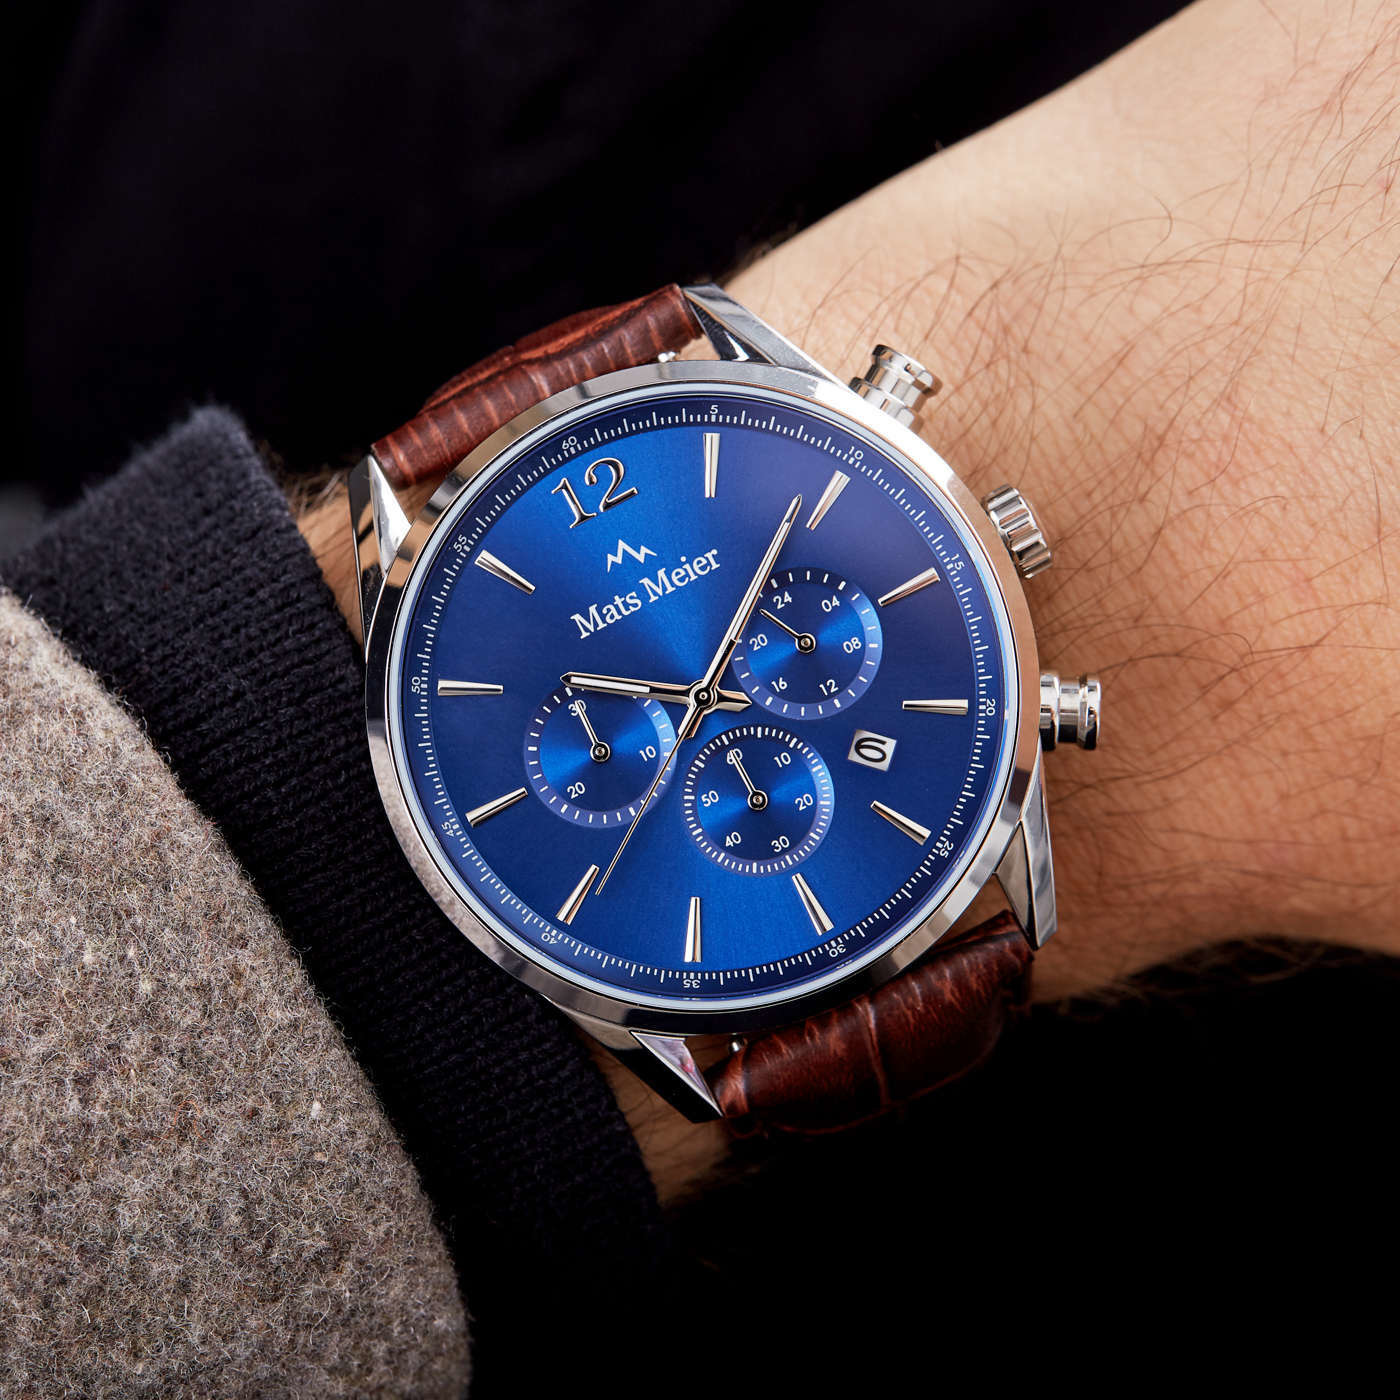 Mats Meier Grand Cornier montre chronographe bleu / marron